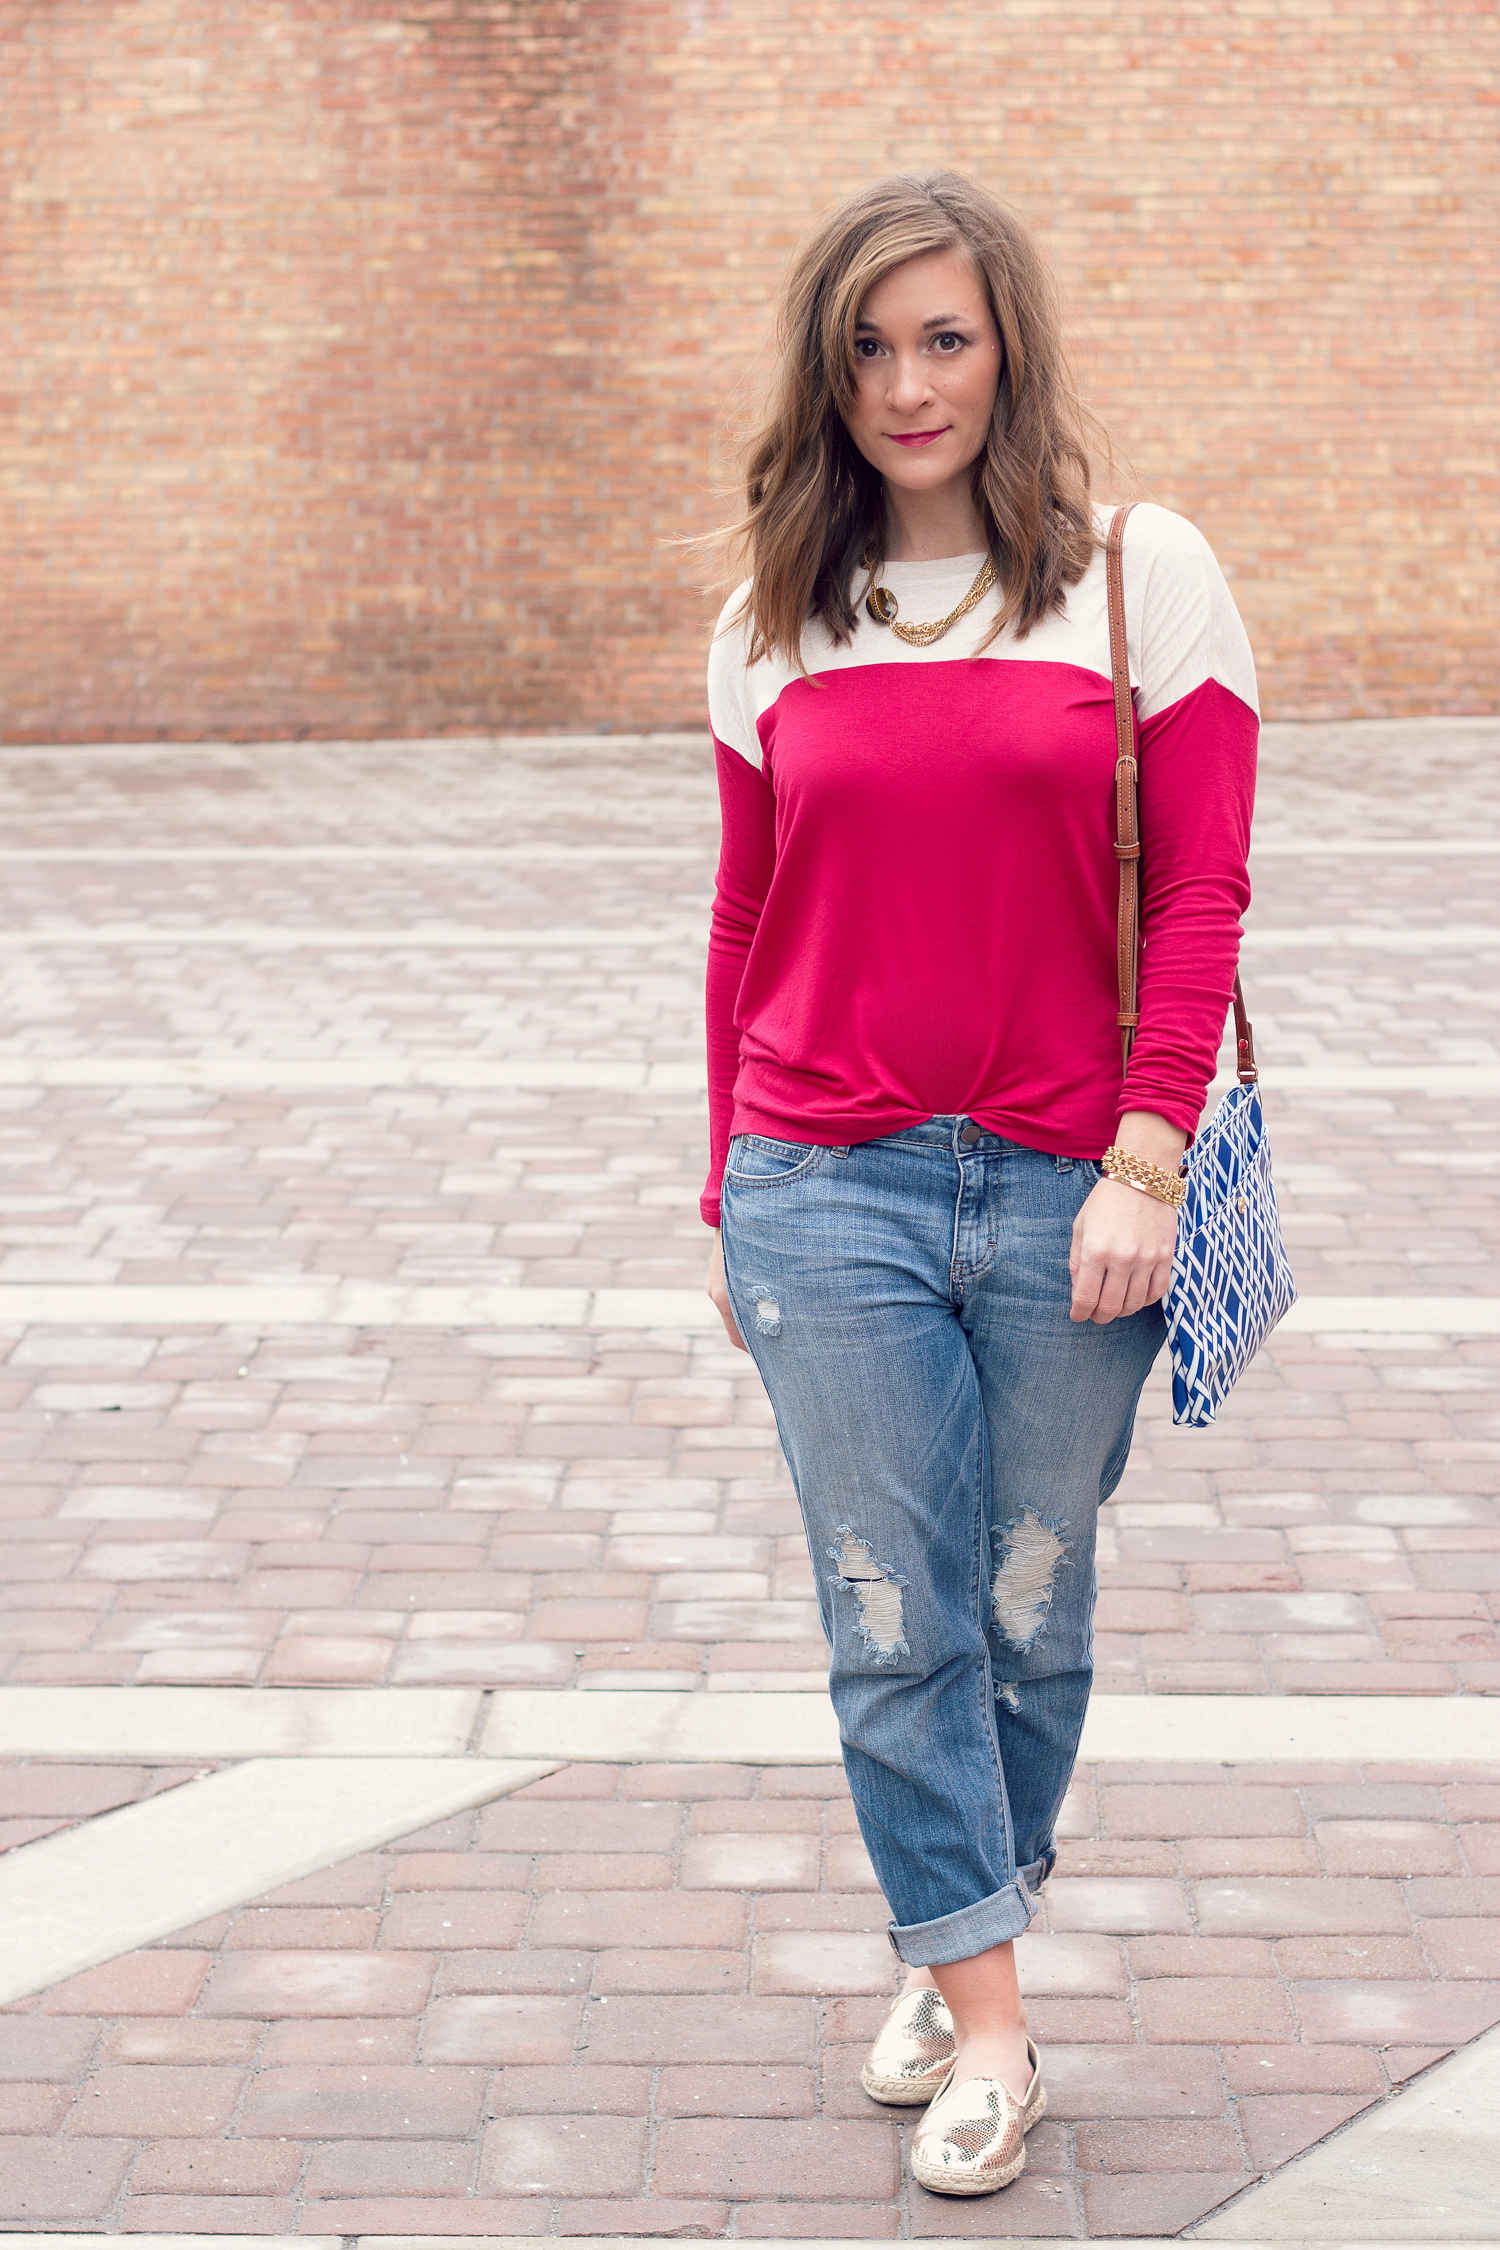 Cute Spring Time Outfit for Women